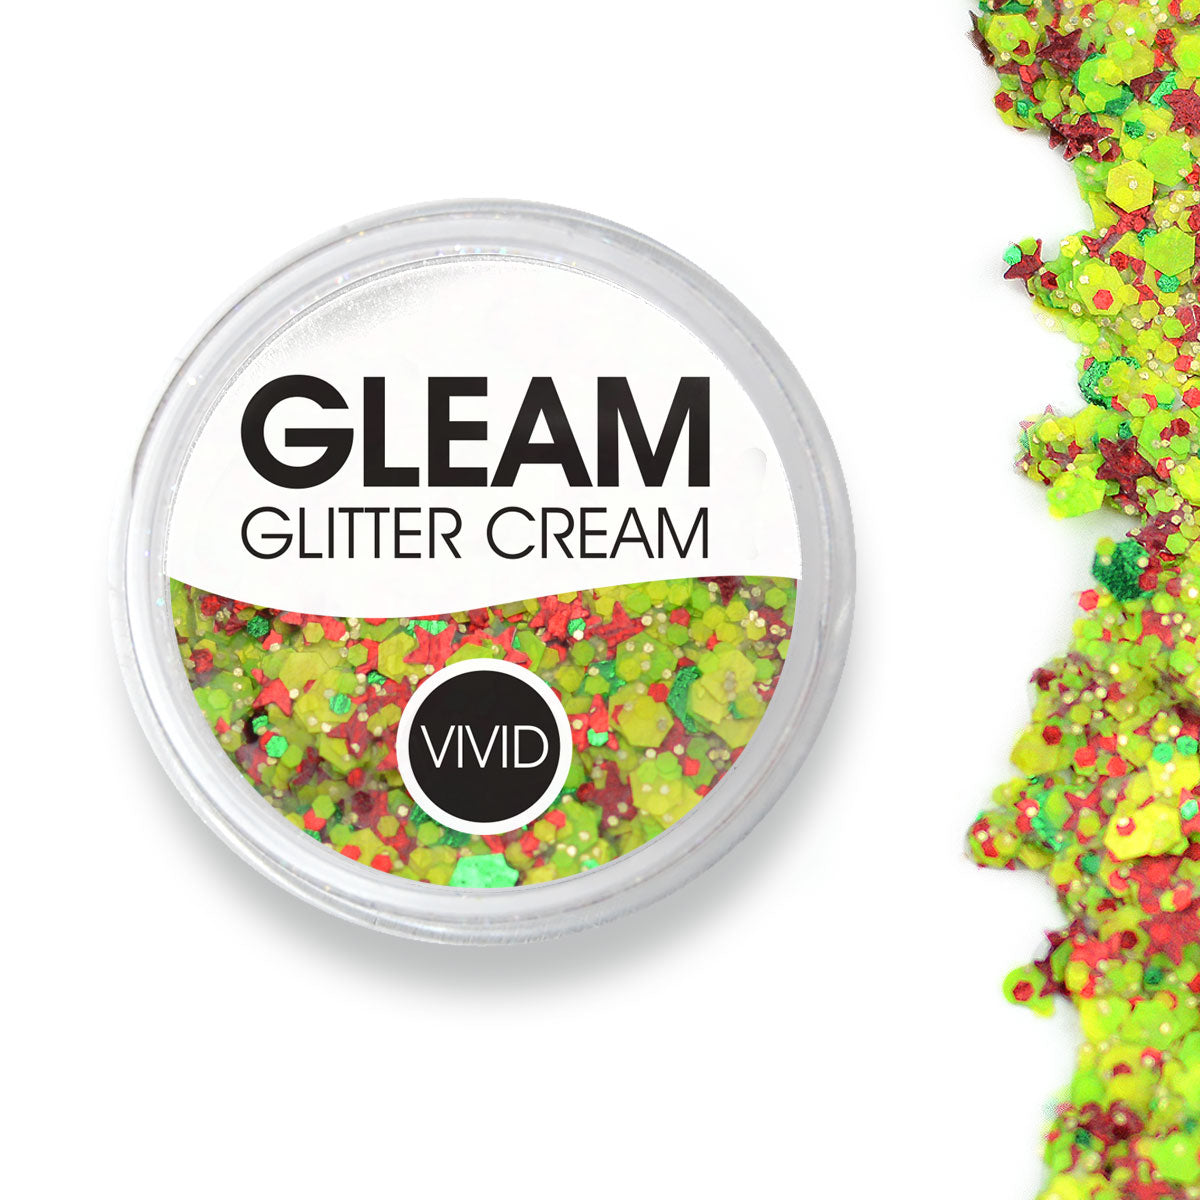 Carnaval (Custom Mix )- Gleam Chunky Glitter Cream